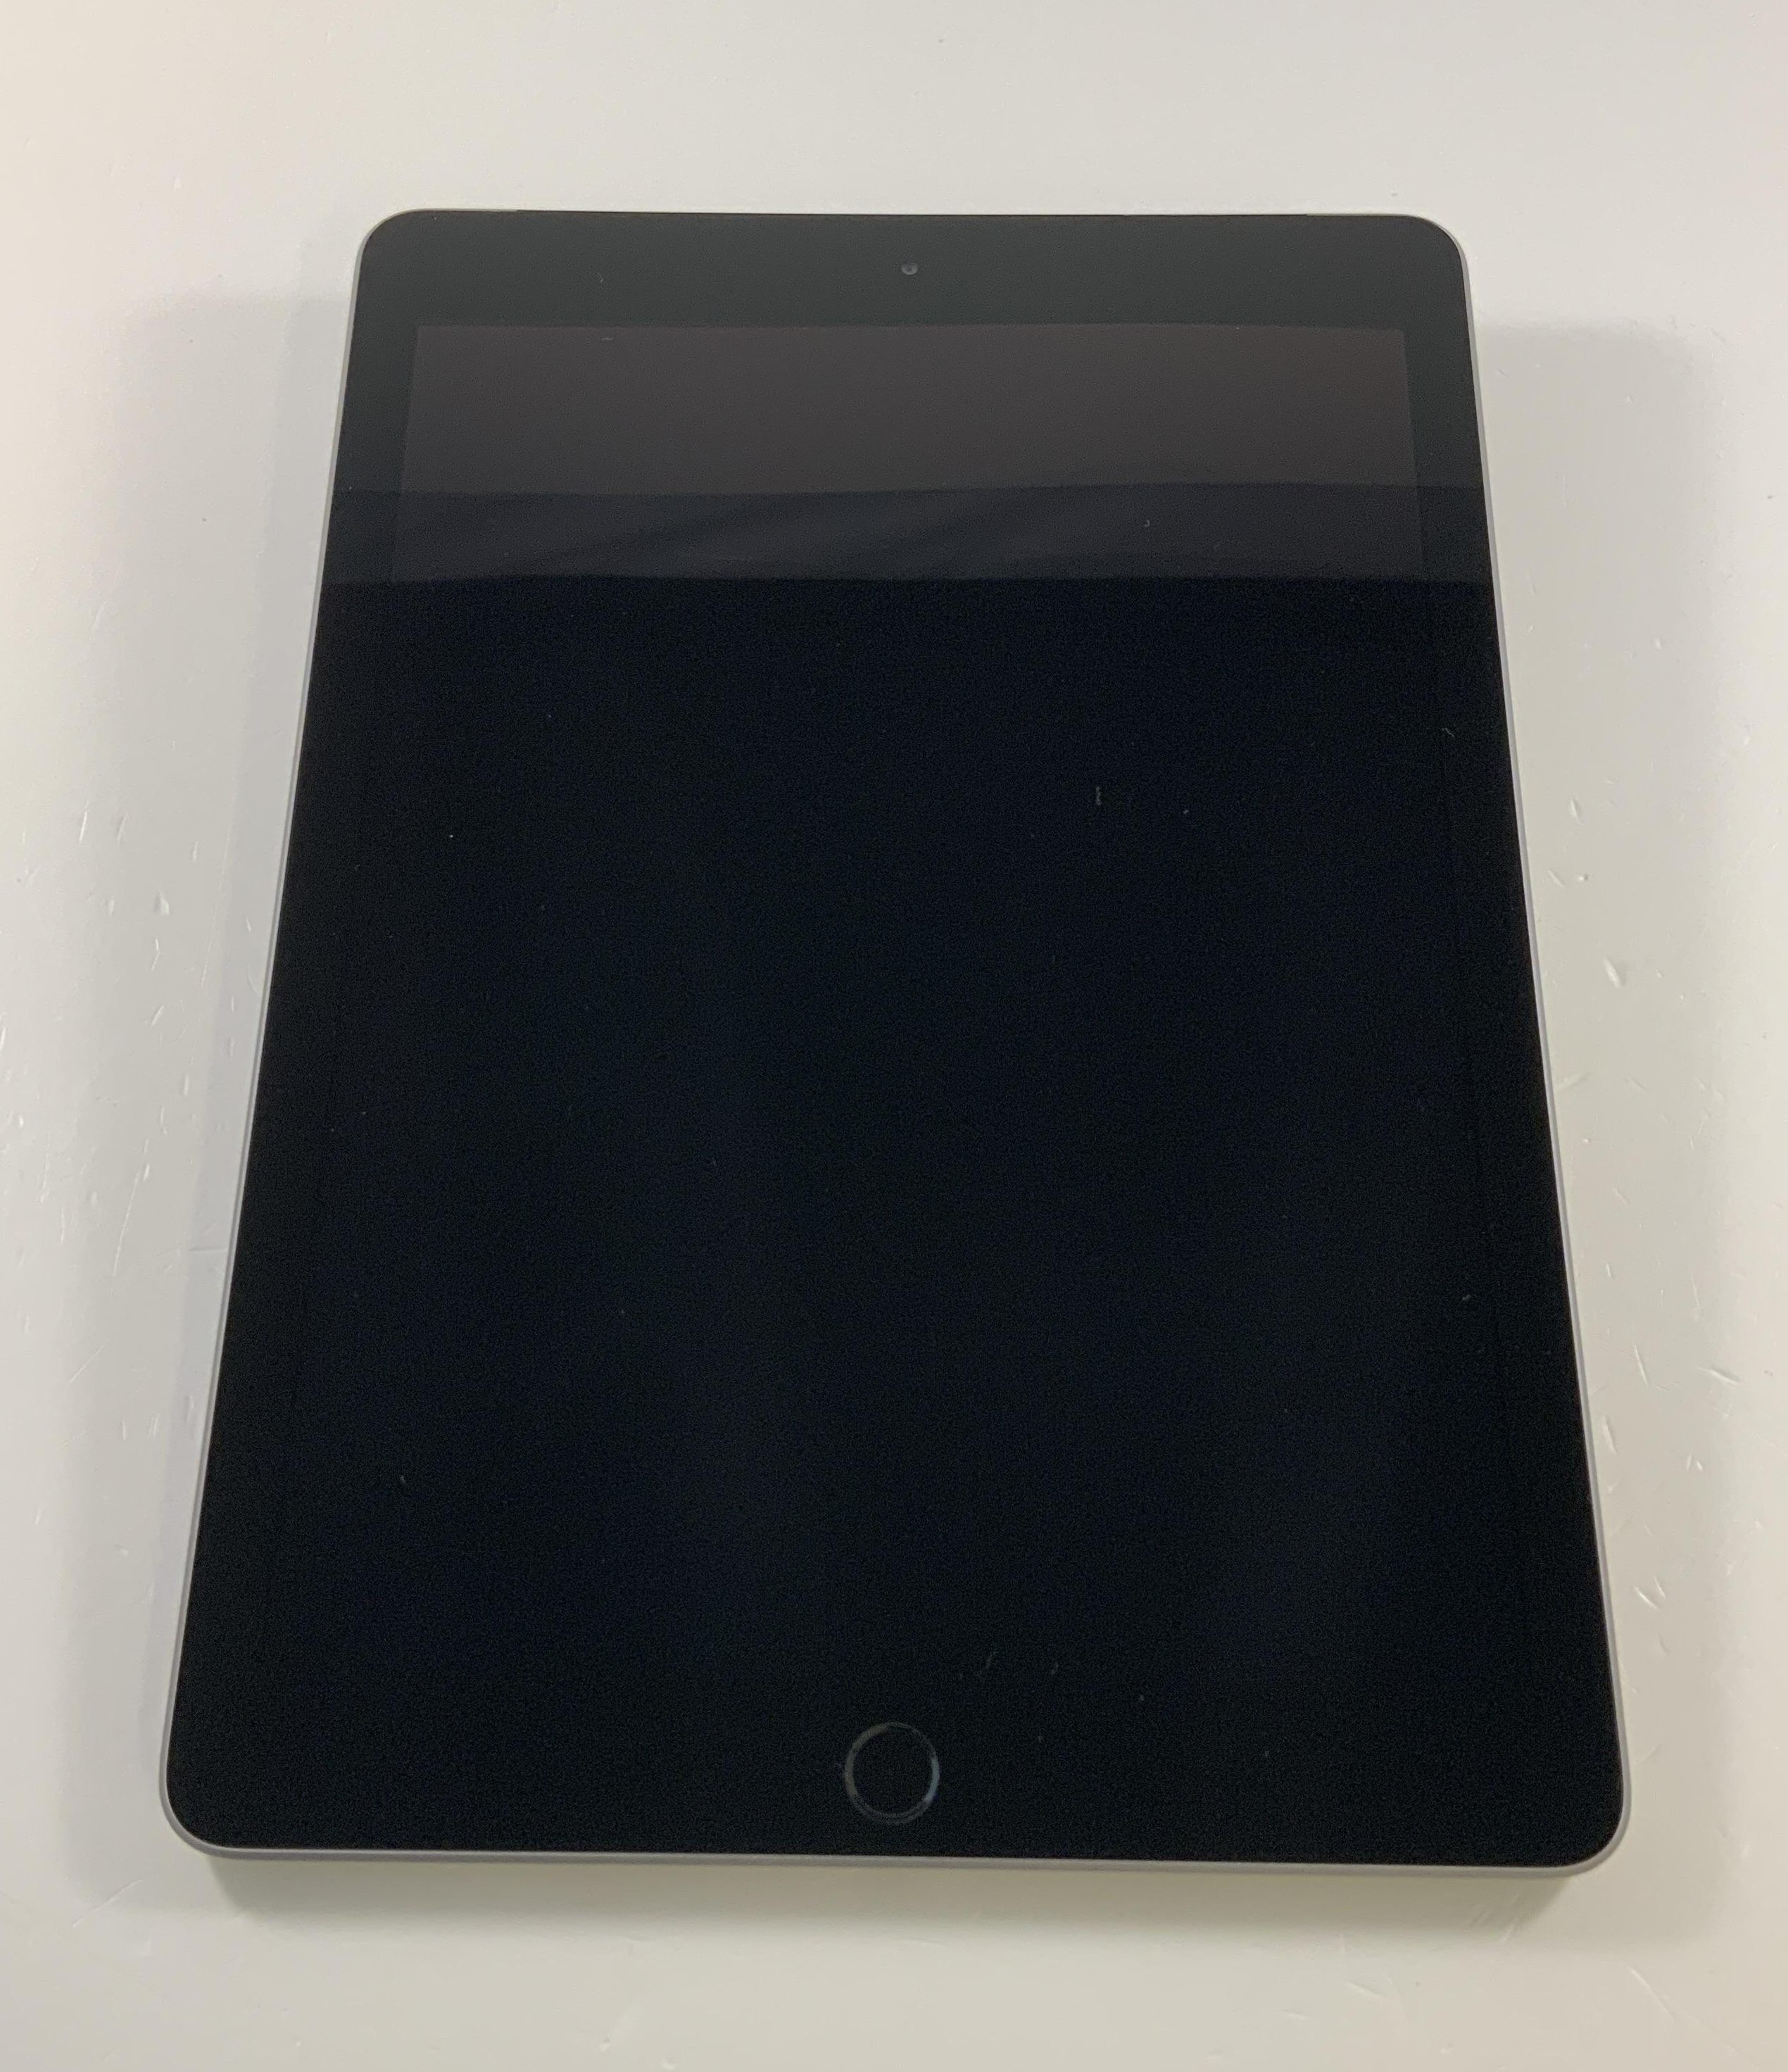 iPad 6 Wi-Fi + Cellular 32GB, 32GB, Space Gray, immagine 1